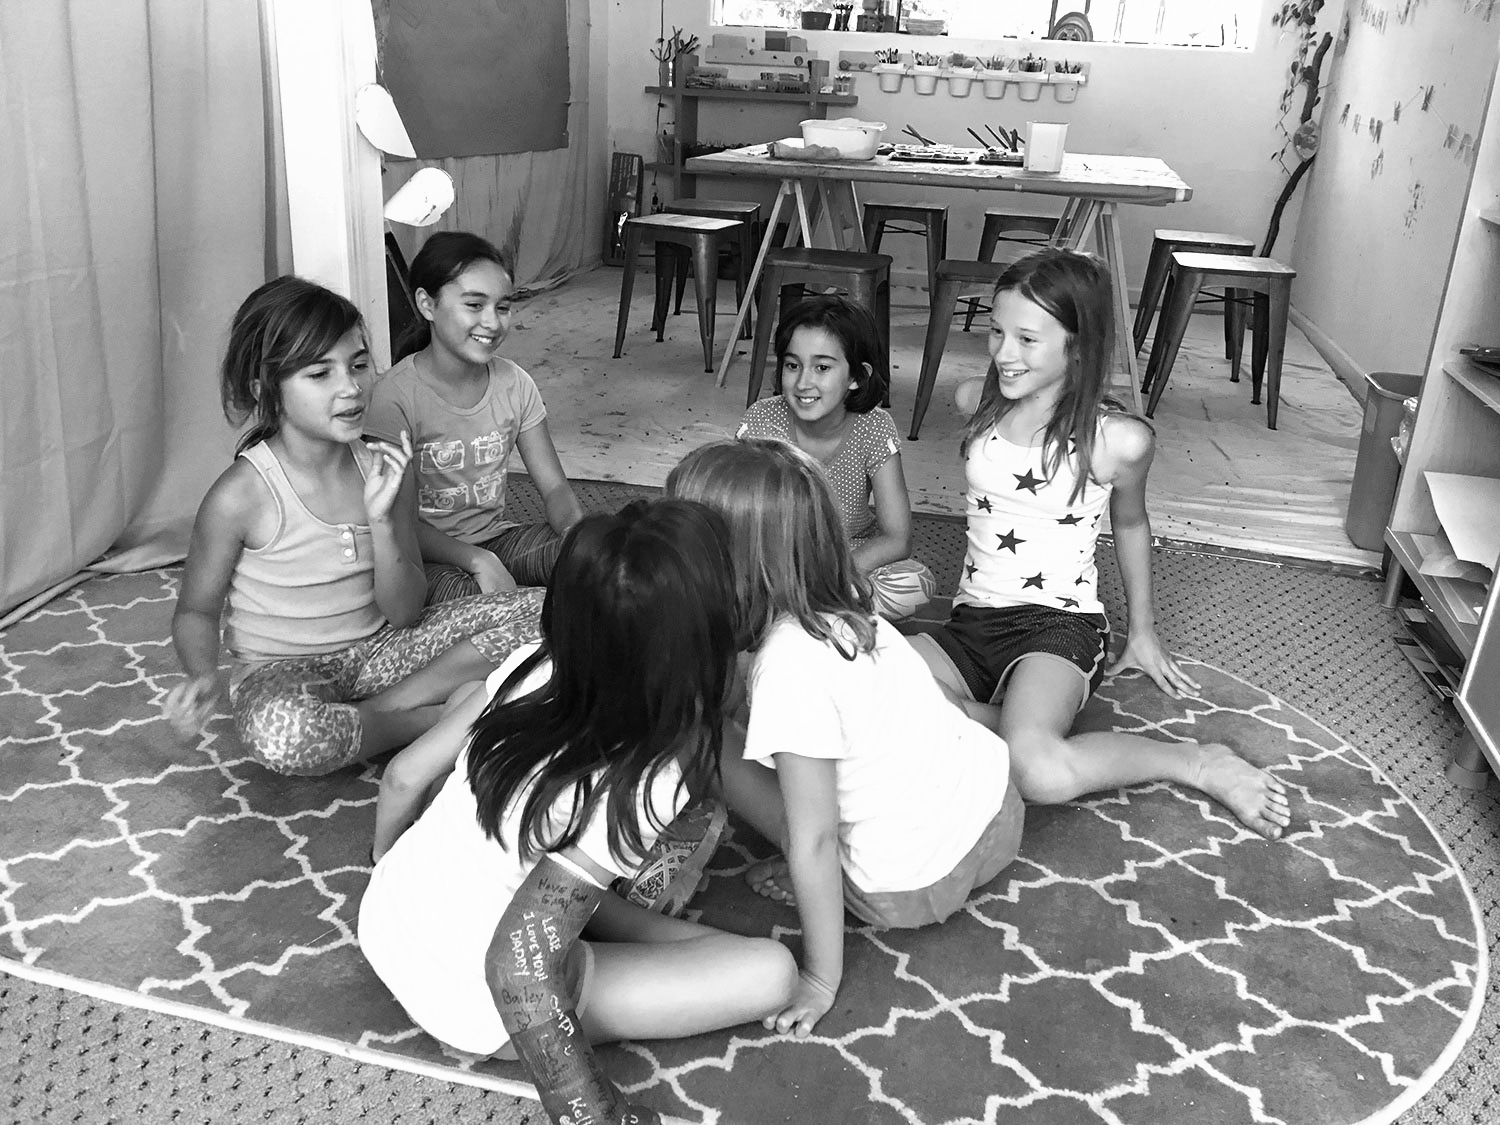 Art and YogaSibling Discount - Receive a 10% Discount for siblings joining Art and Yoga Summer Session classes together.Enter discount code: SIBLINGat checkout.